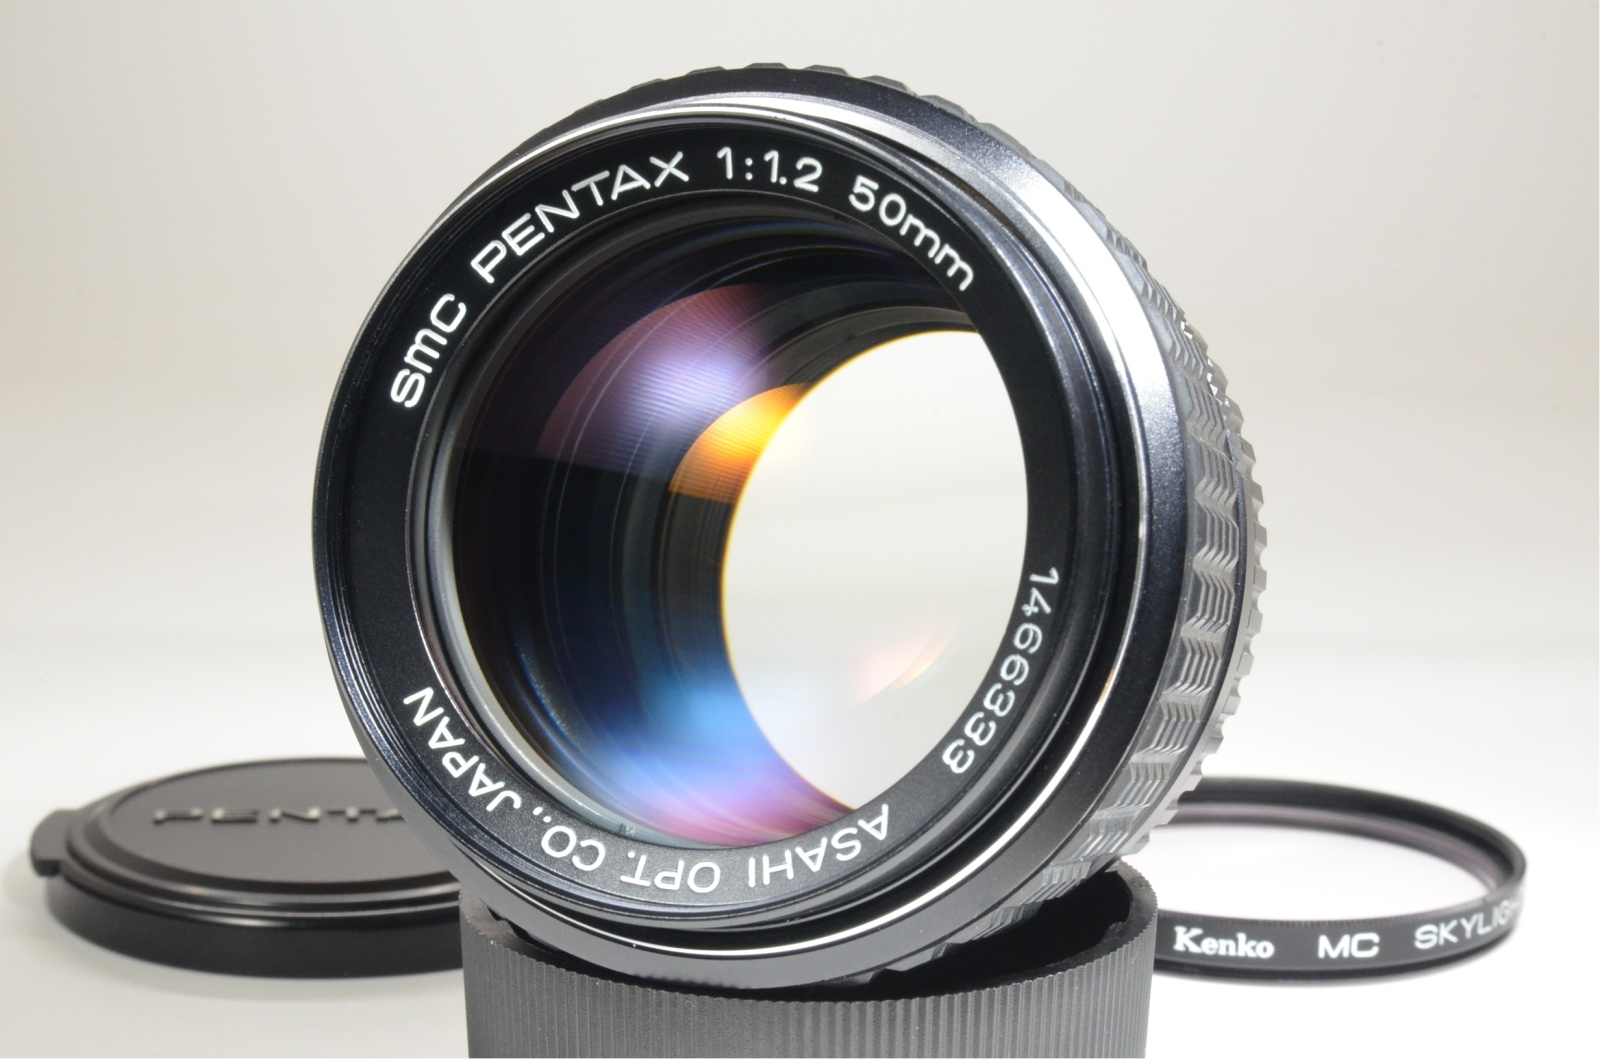 asahi smc pentax 50mm f/1.2 lens for k mount from japan